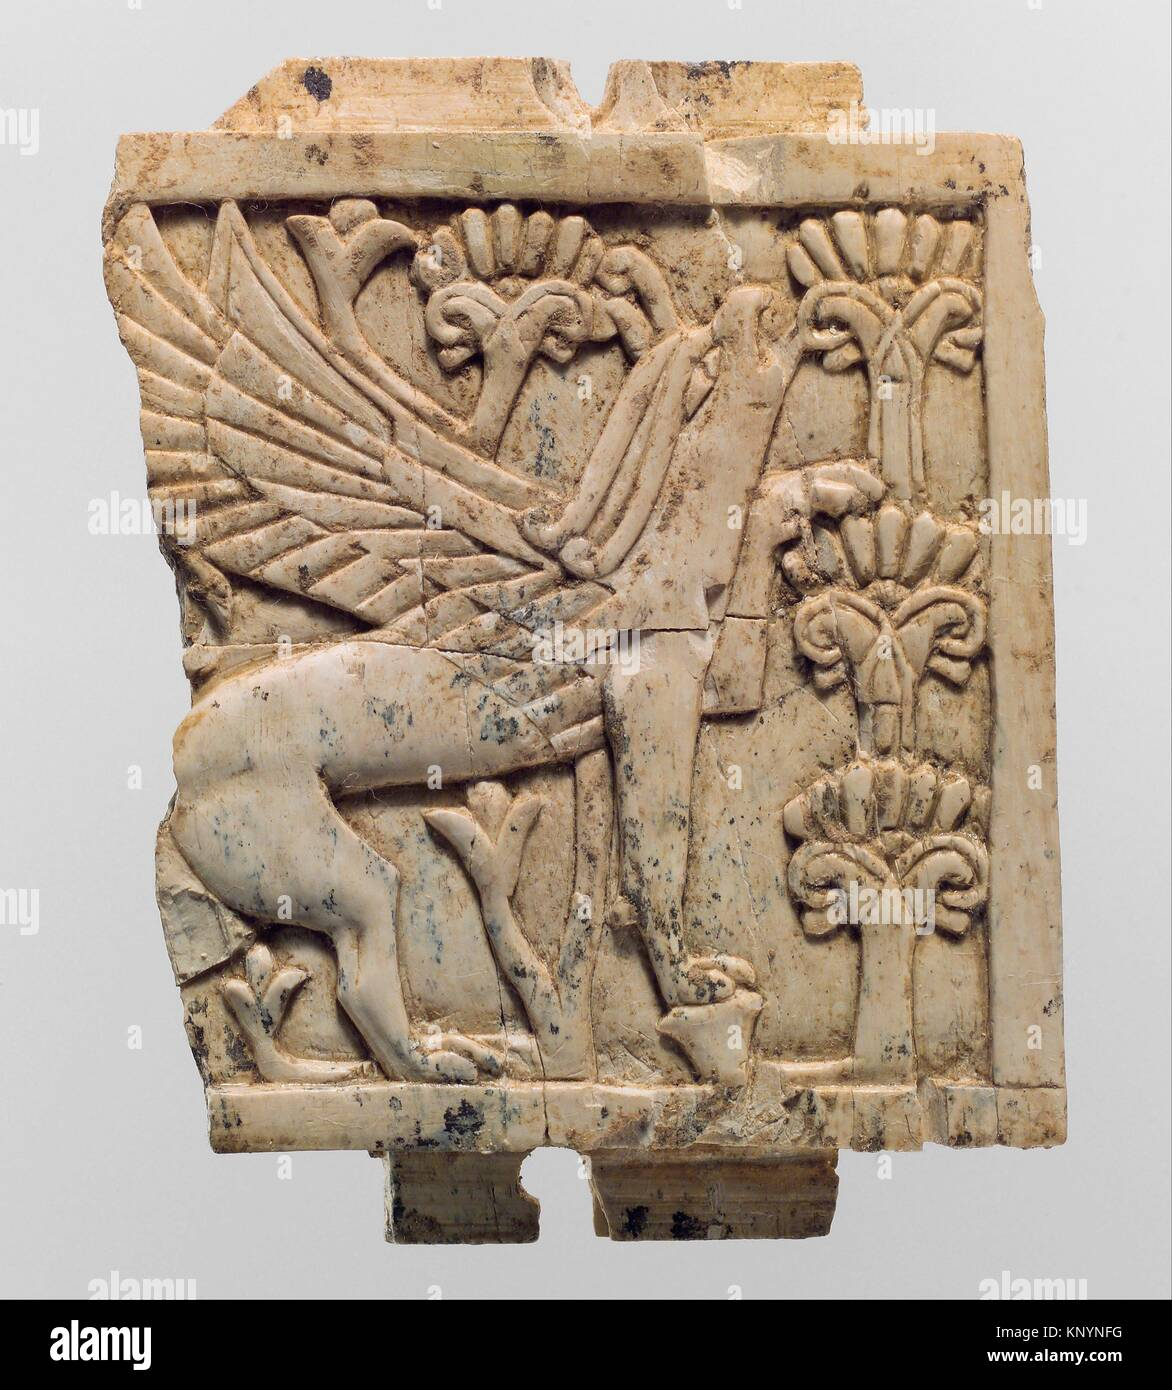 Furniture Plaque Carved In Relief With A Griffin In A Floral Landscape.  Period: Neo Assyrian; Date: Ca. 9th 8th Century B.C; Geography: Mesopotamia,